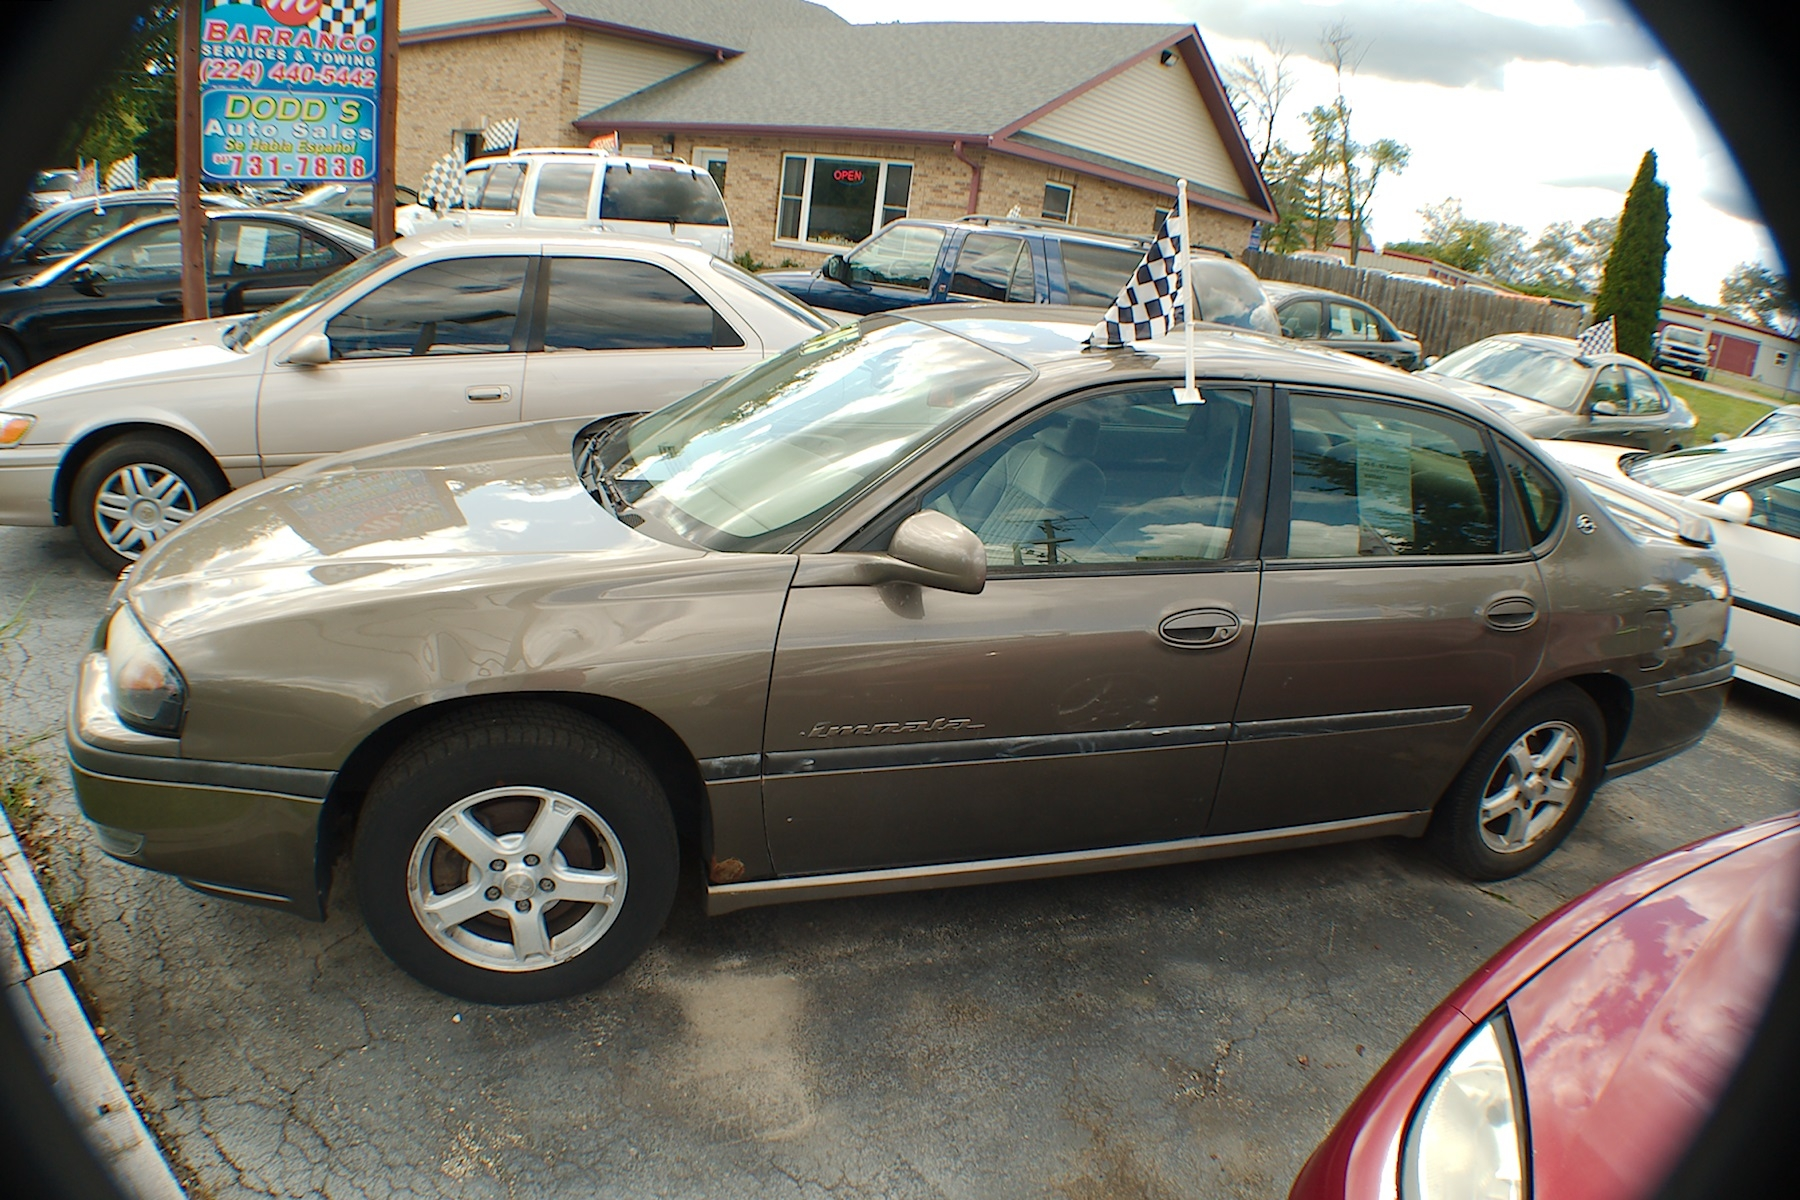 2003 Chevrolet Impala LS Brown Sedan Used Chevy Sale Antioch Zion Waukegan Lake County Illinois